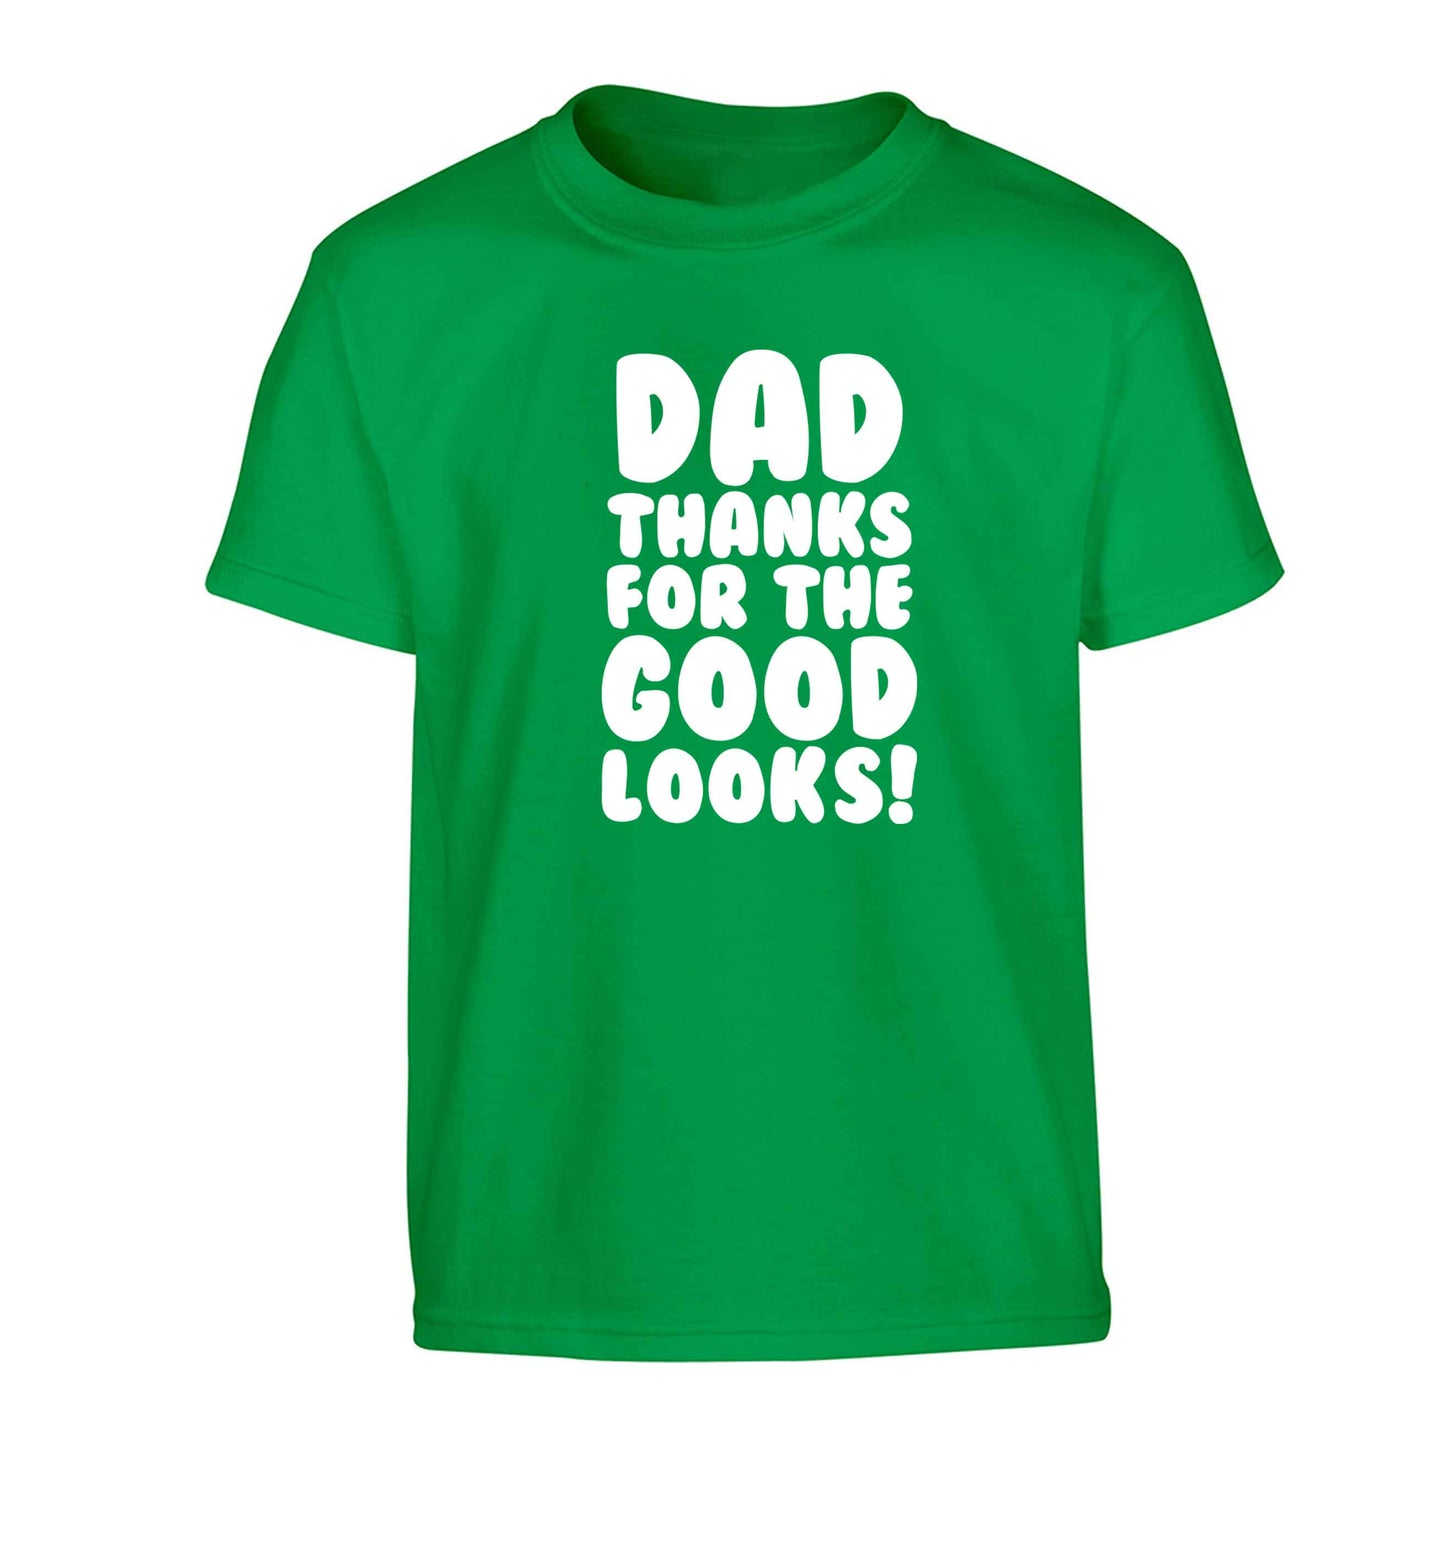 Dad thanks for the good looks Children's green Tshirt 12-13 Years